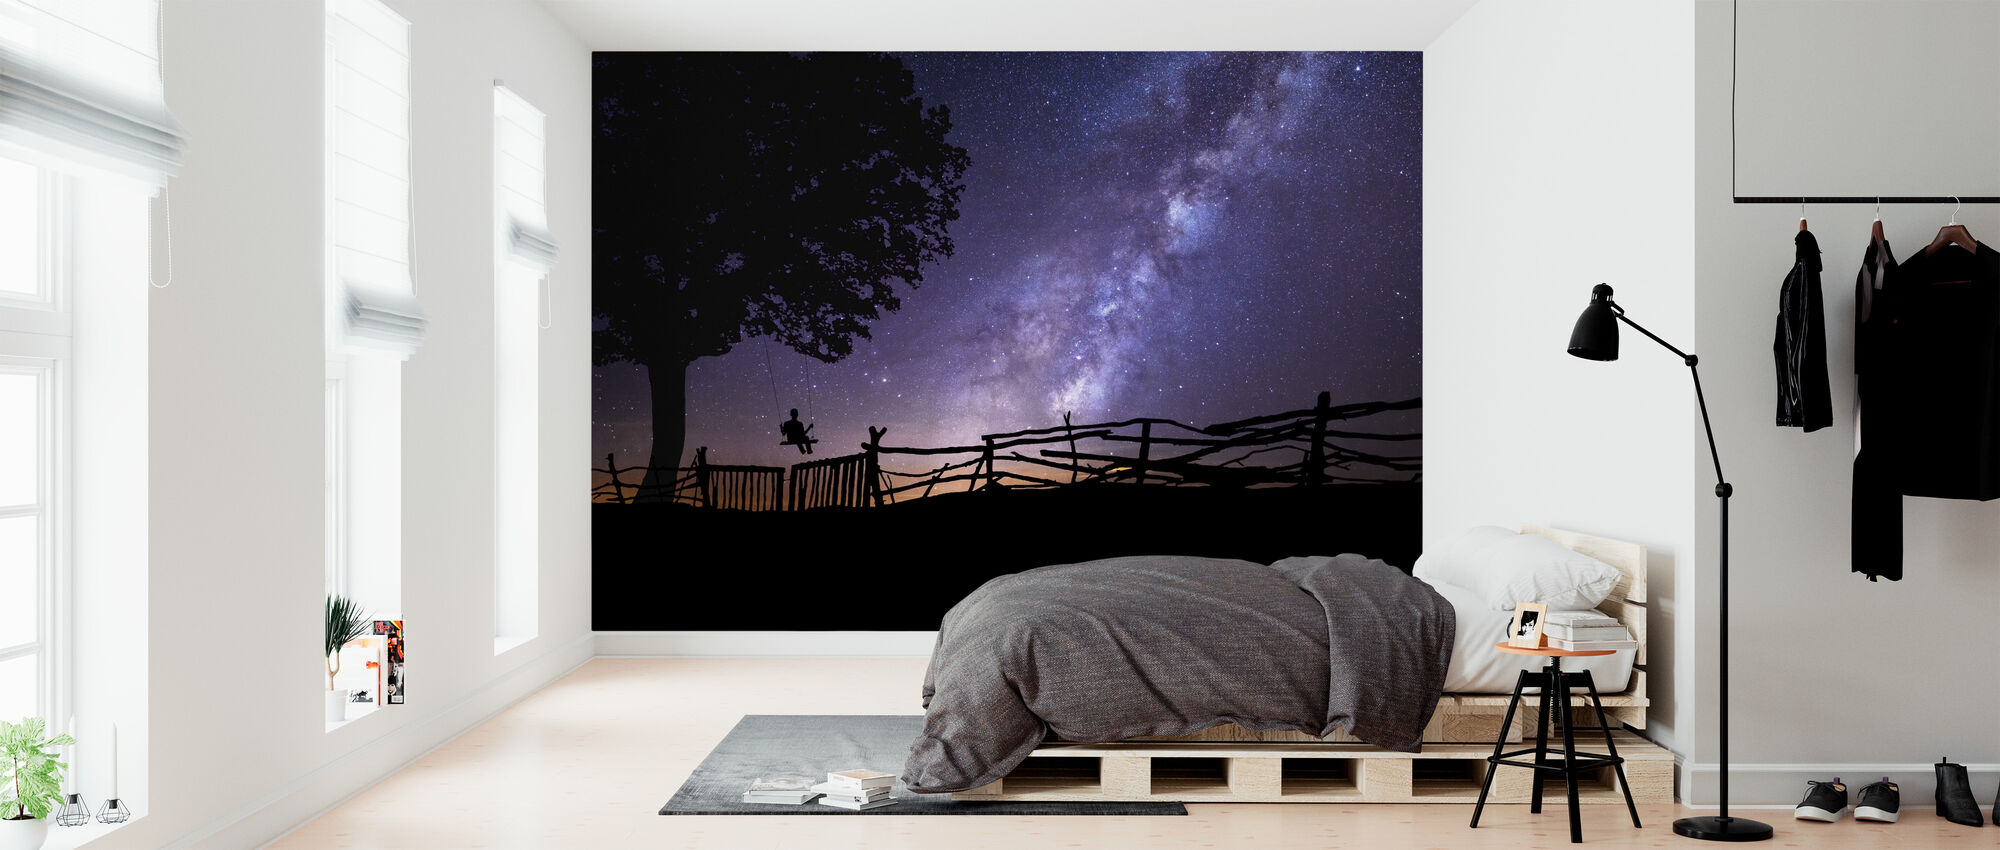 Starry Night Sky - Wallpaper - Bedroom